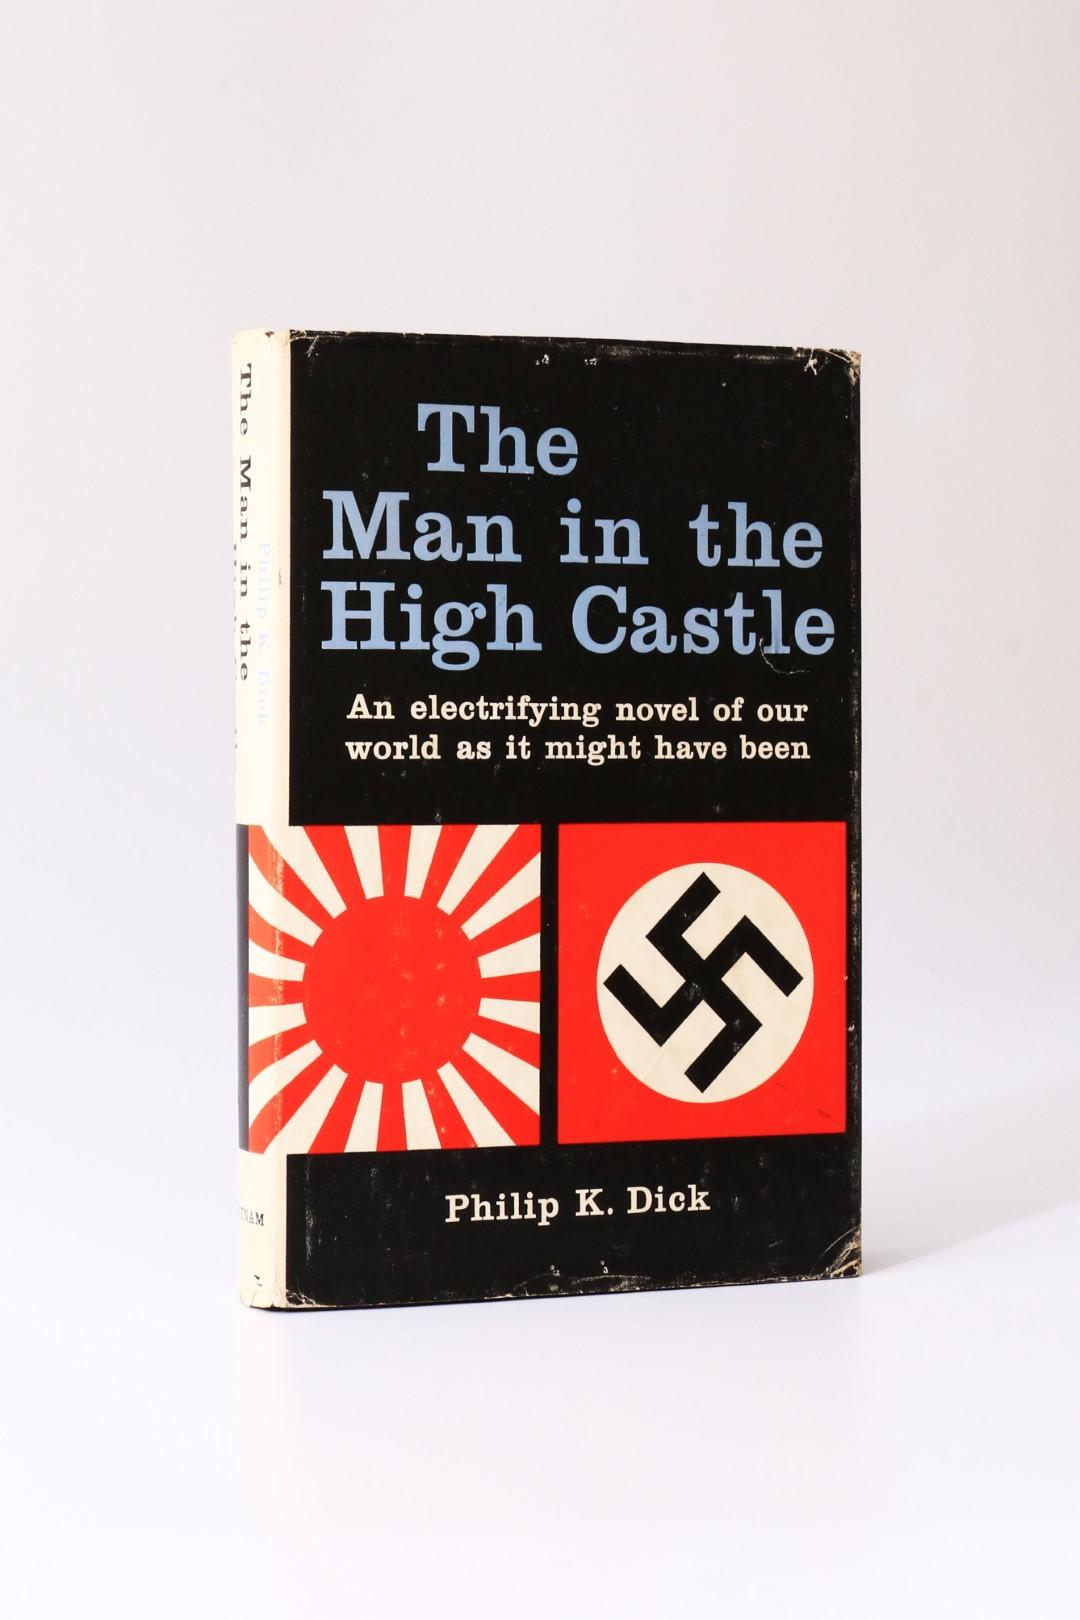 Philip K. Dick - The Man in the High Castle - Putnam's, 1962, First Edition.